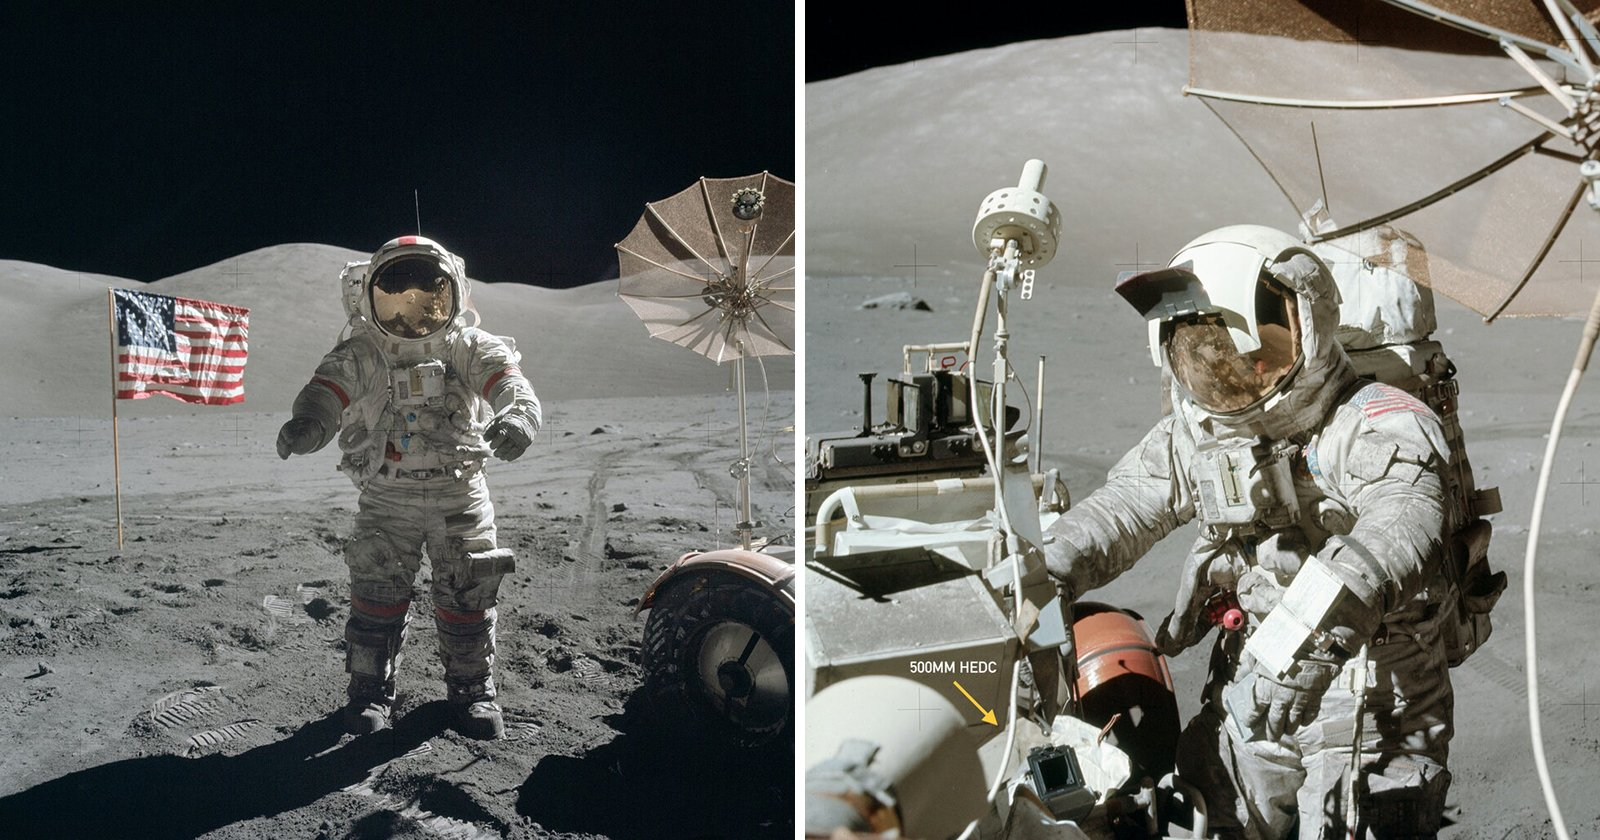 I Found NASA Astronaut Gene Cernan's Missing Moon Camera... on Earth